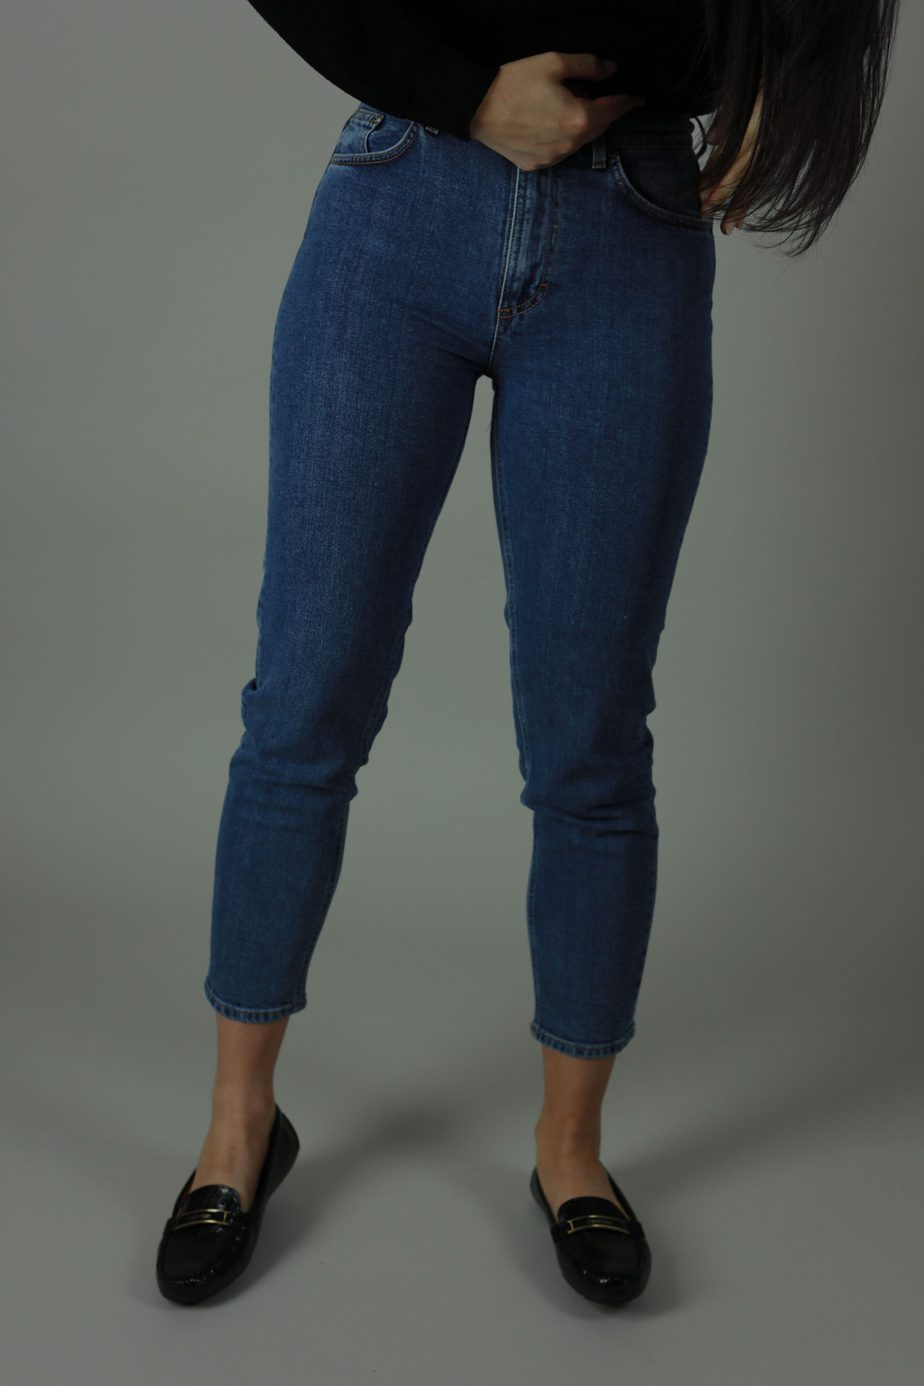 The High waist Lena jean is 98% cotton and 2% Elastane. Lena The Hague jean is cropped for summer style , designed for comfort thesehigh quality jeans will meet every new year with you. Front view.